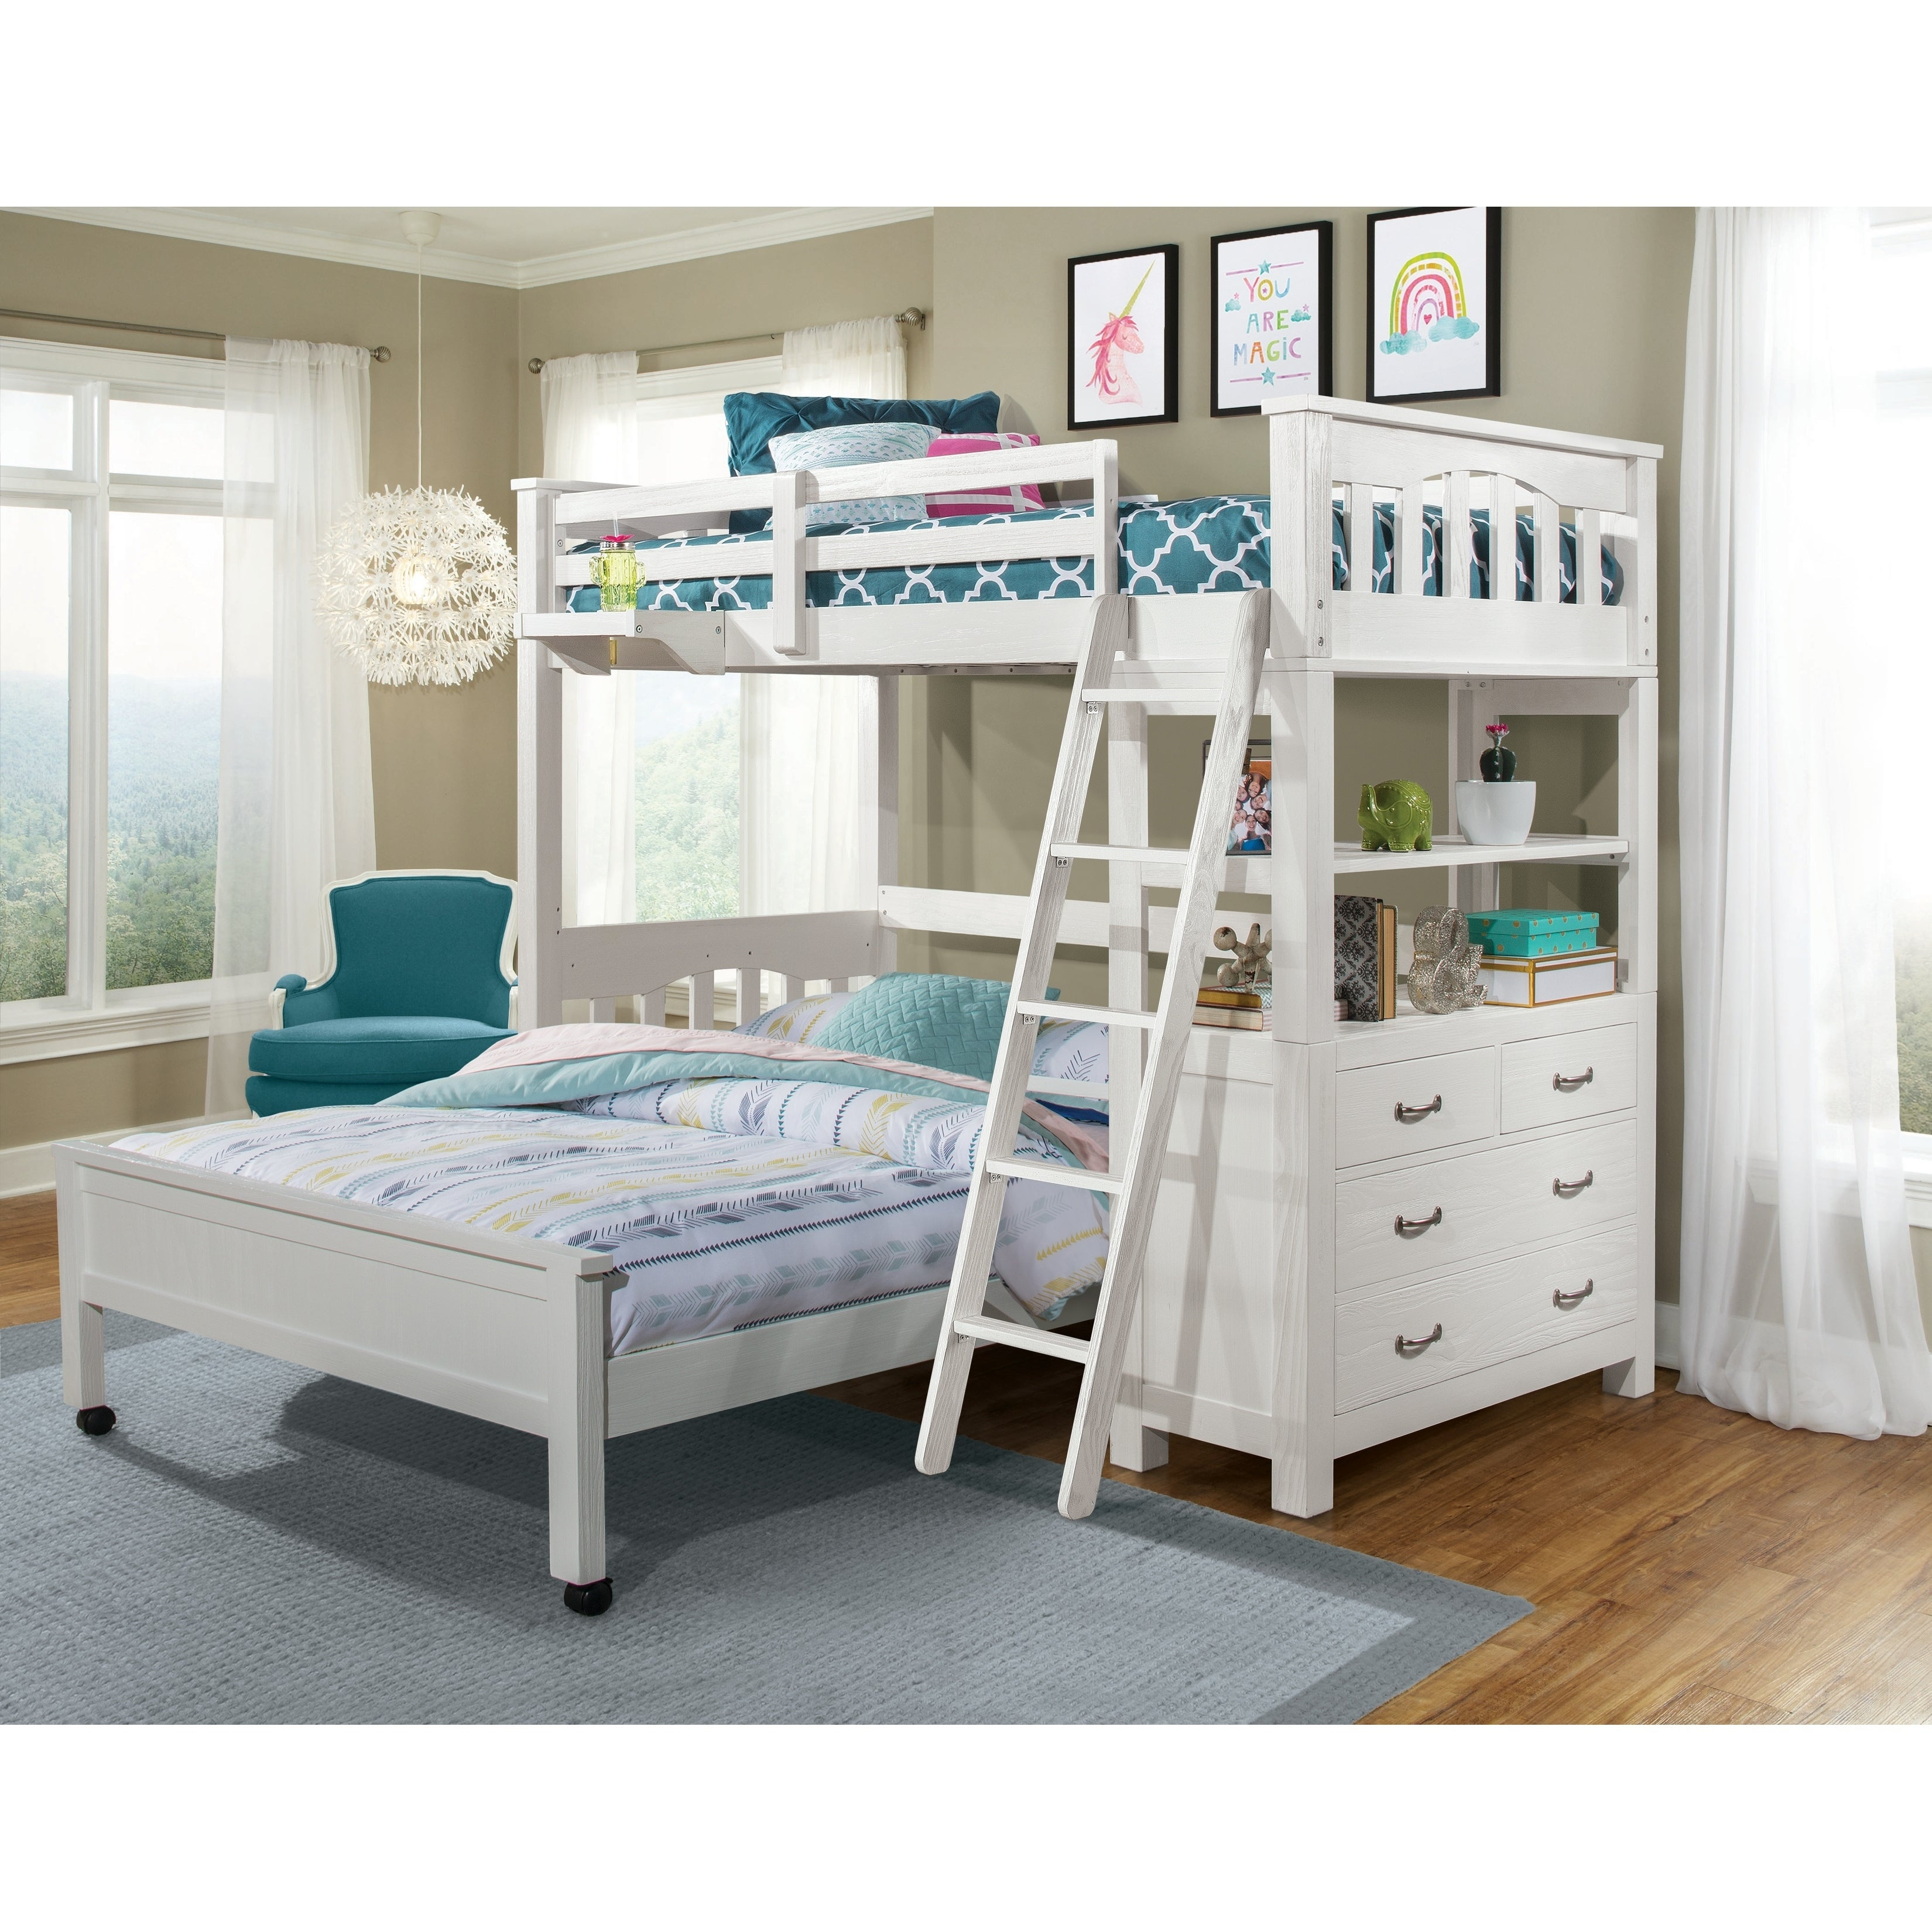 Highlands Loft Bed With Lower Bed And Hanging Nightstand Overstock 28564100